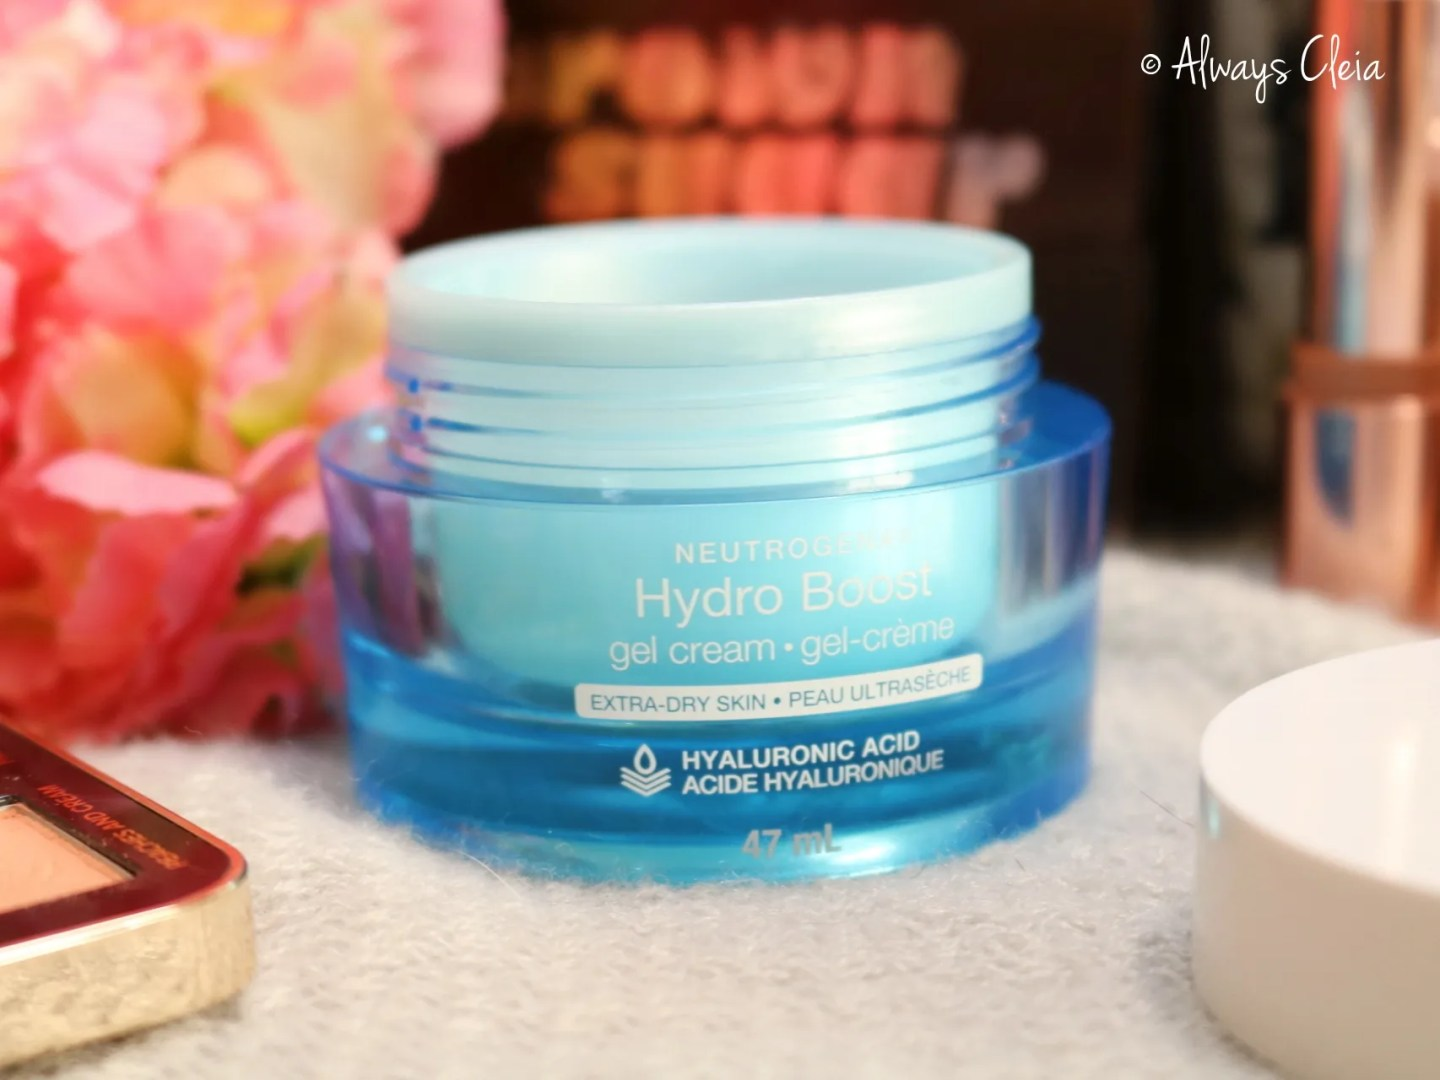 Neutrogena Hydro Boost Gel Creme Review